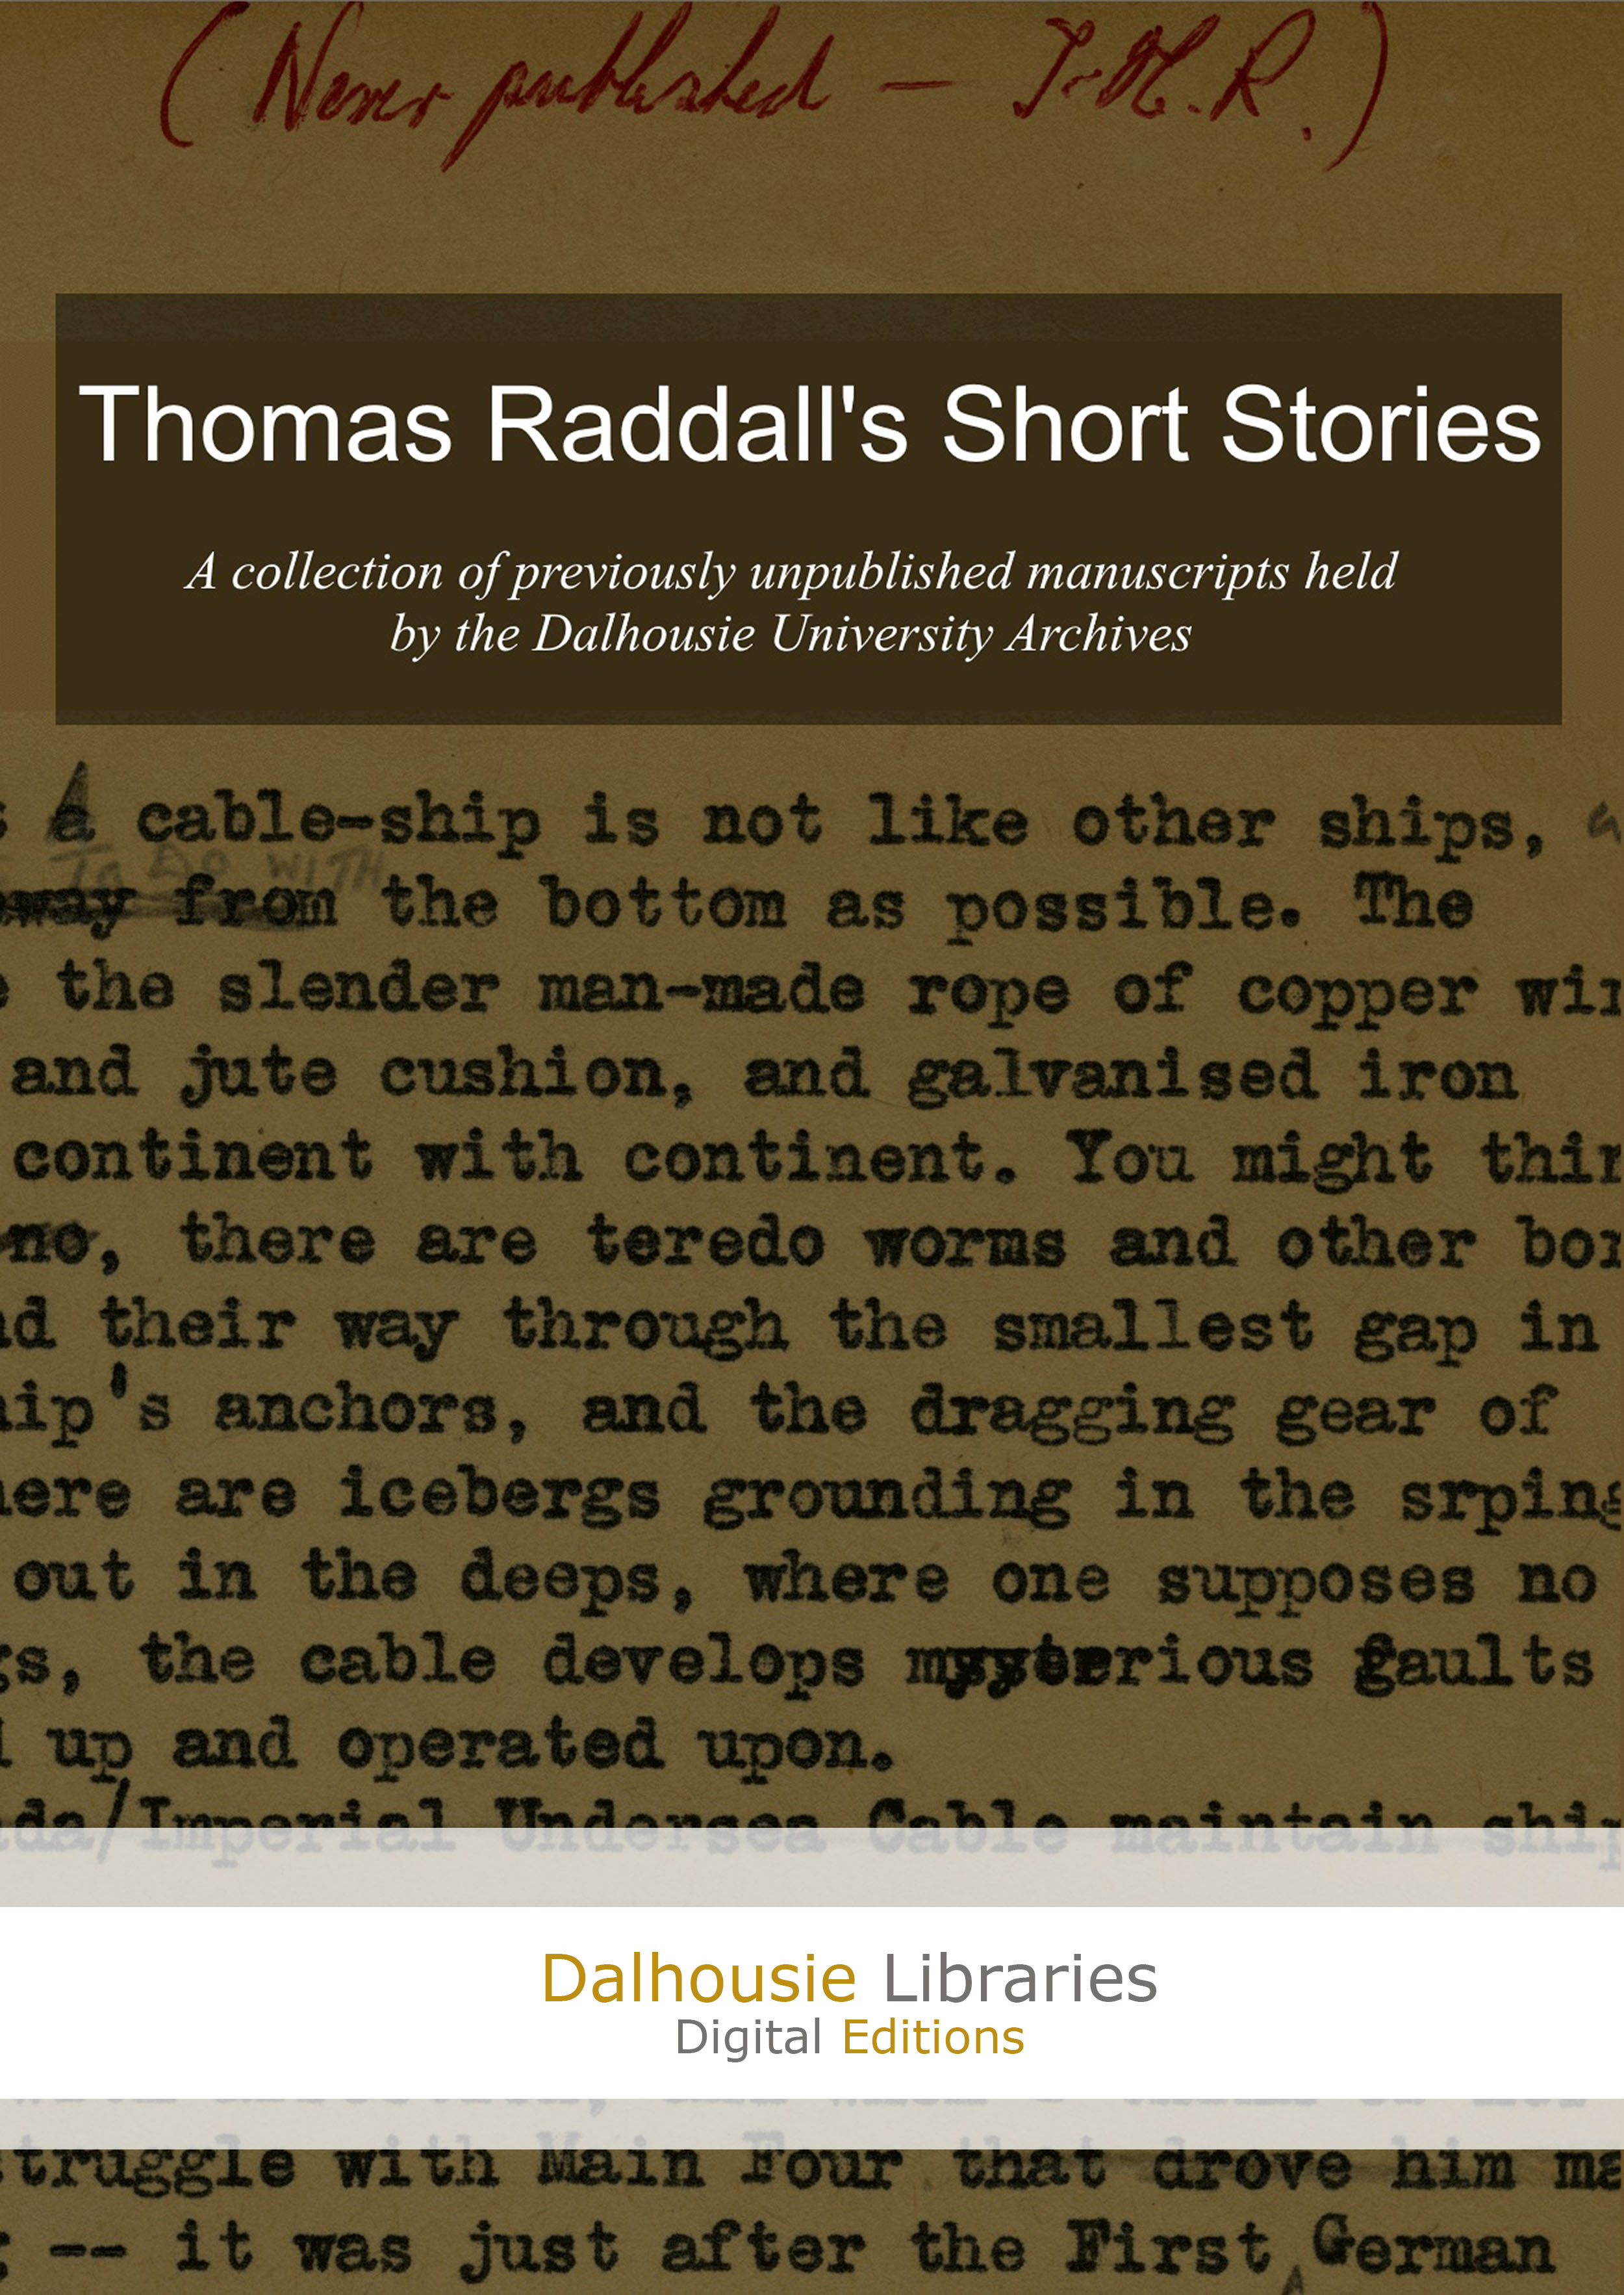 Cover image for Thomas Raddall's Short Stories